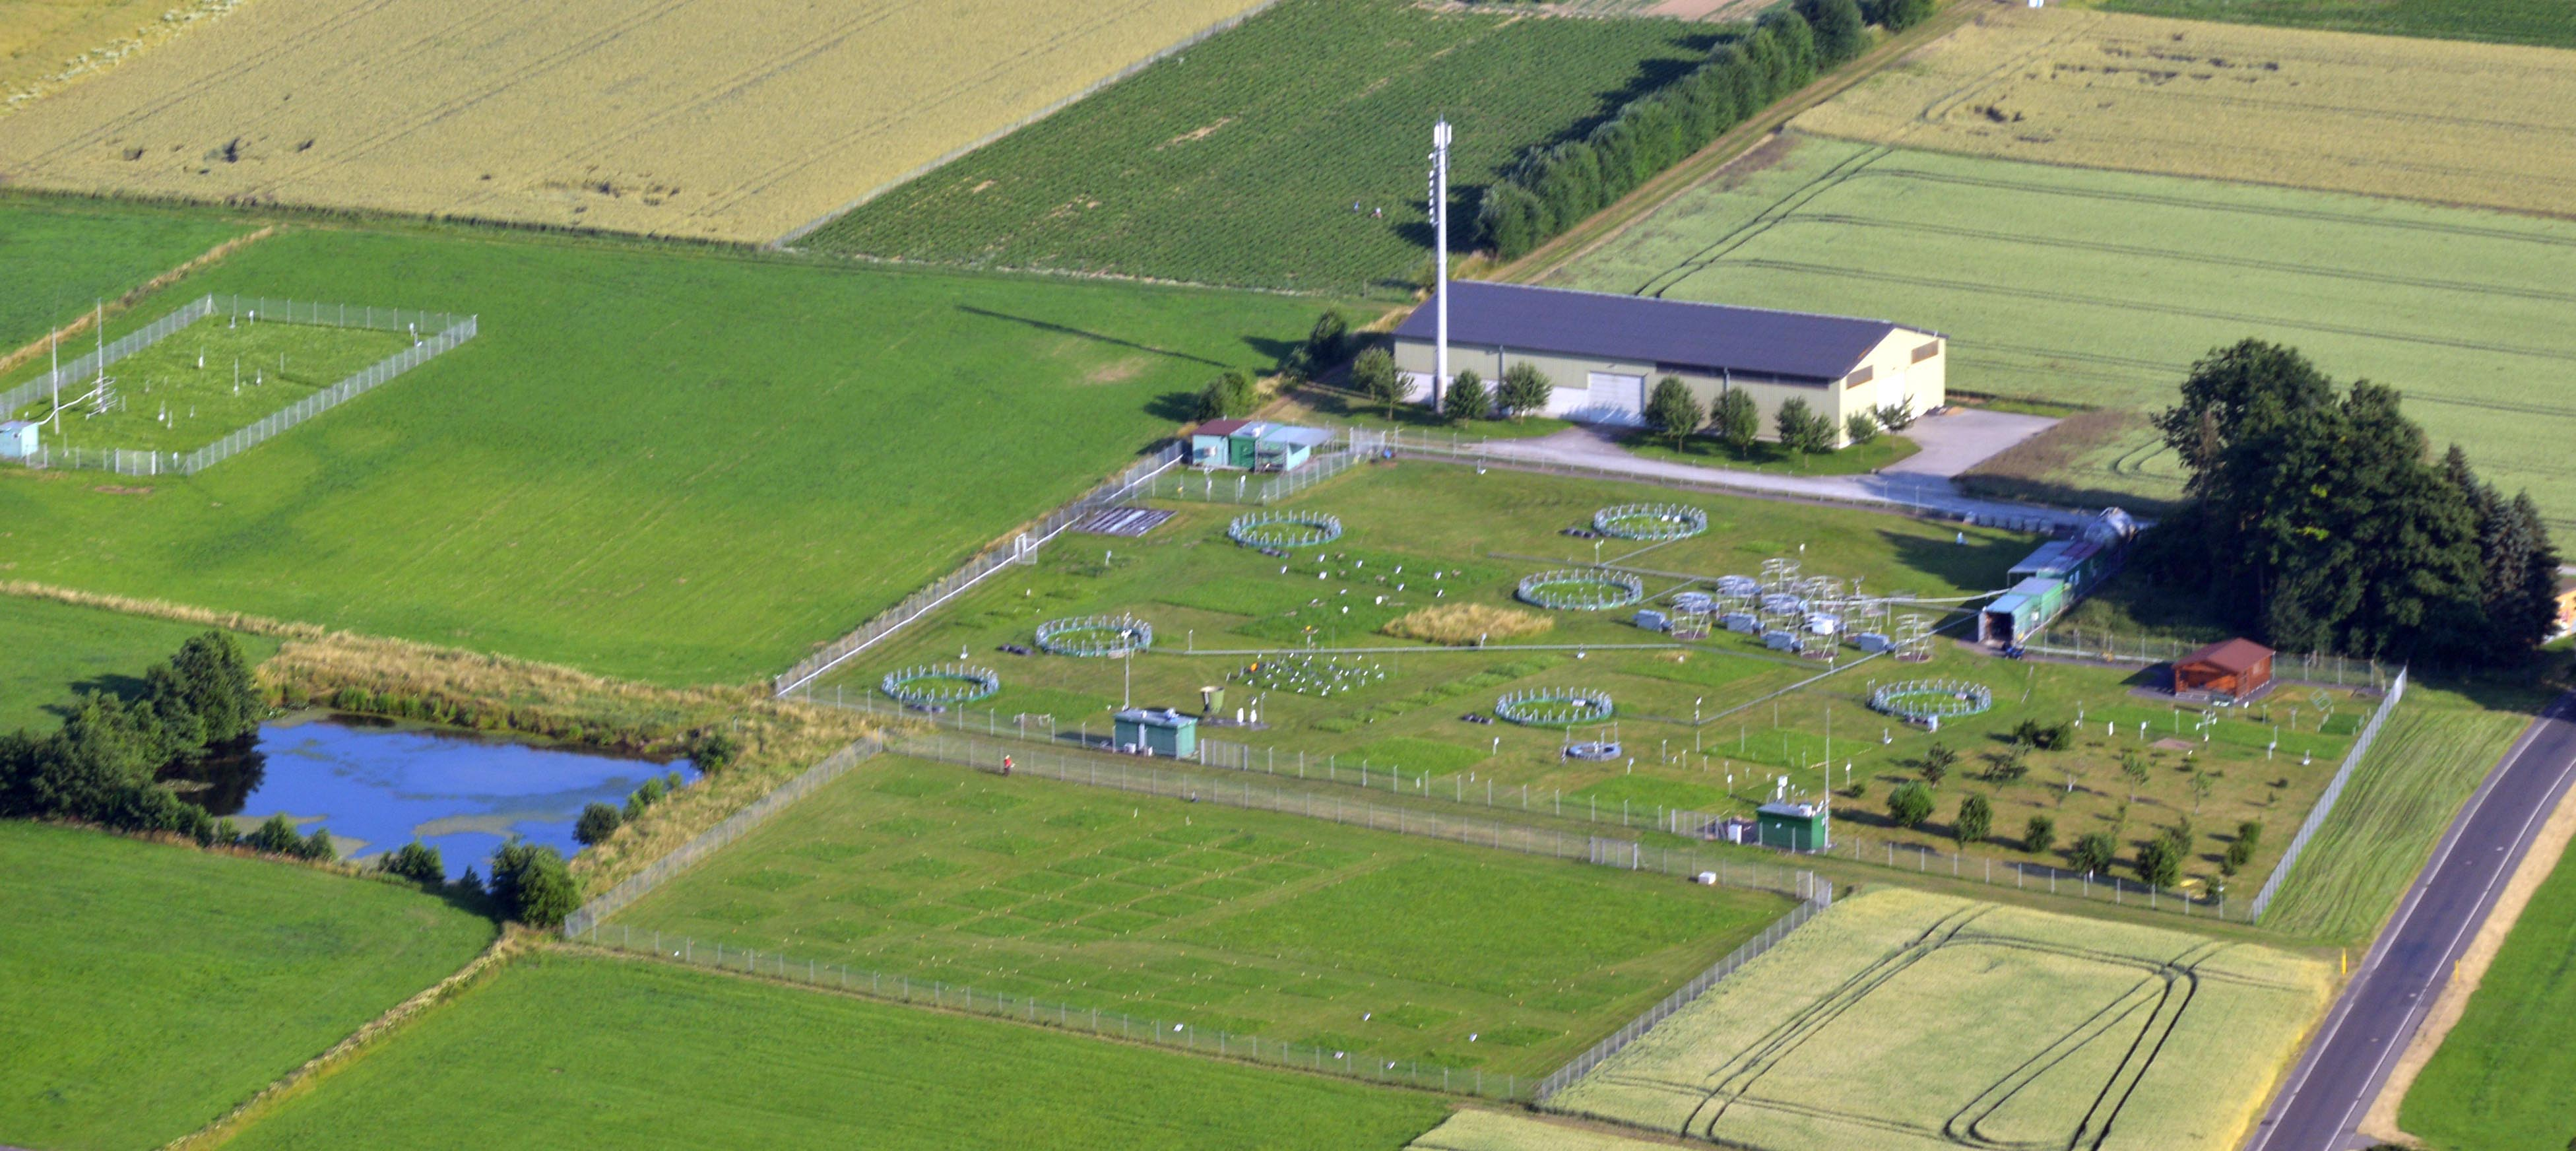 Aerial photograph of the GiFACE facility (copyright C. Wißmer 2013)